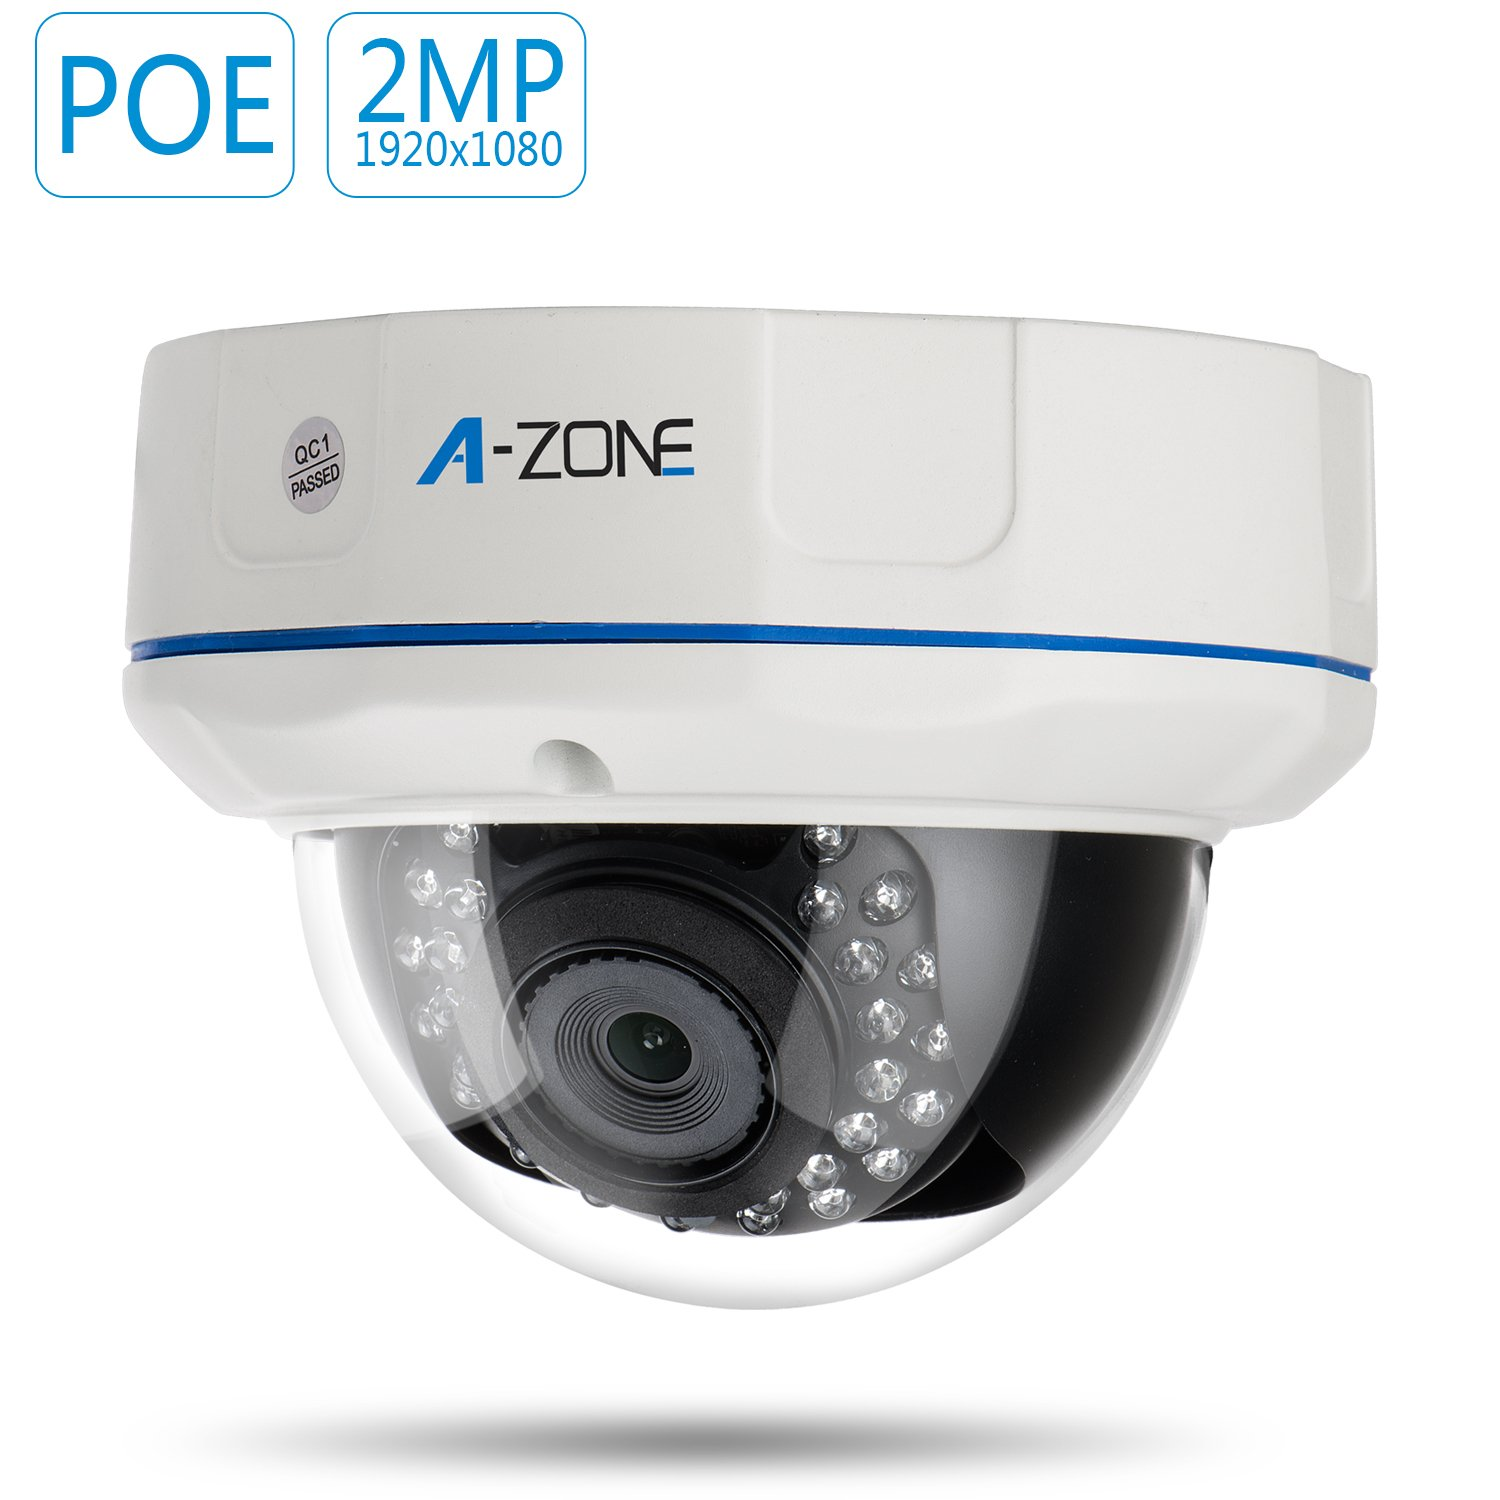 A-ZONE 2MP PoE dome camera Tollar 857804